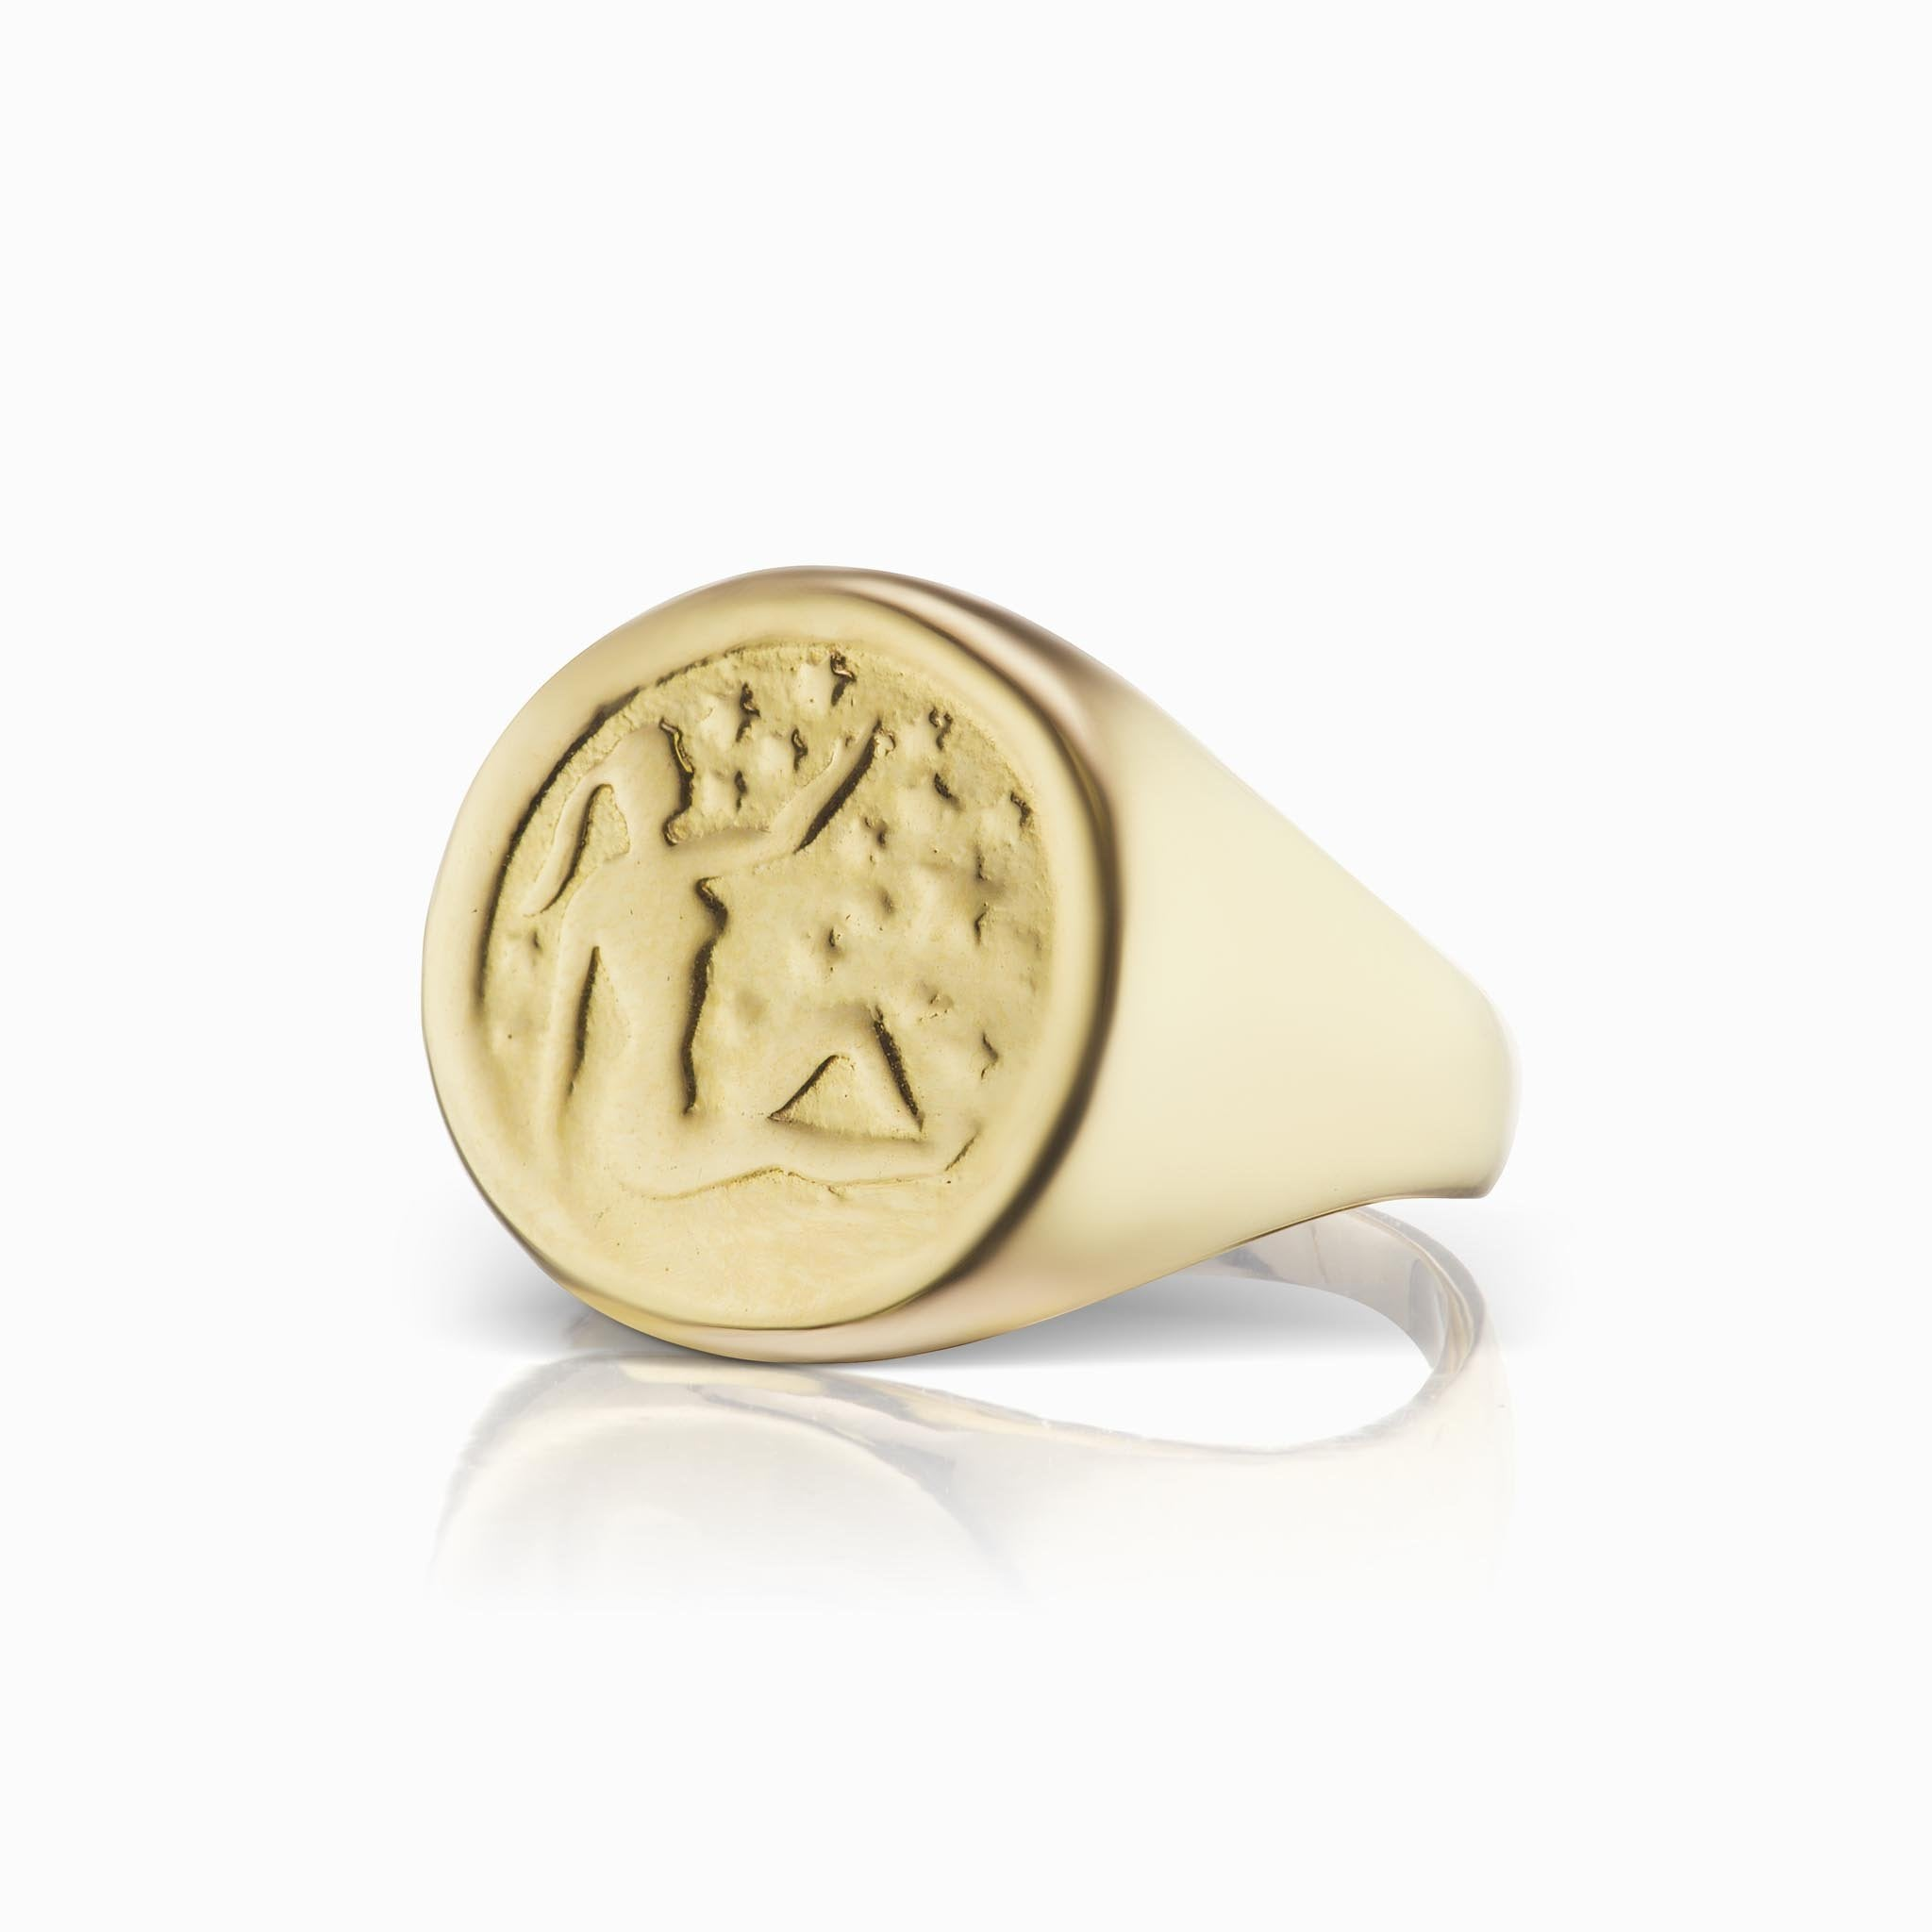 Zodiac Signet Ring - Virgo - In Stock Now